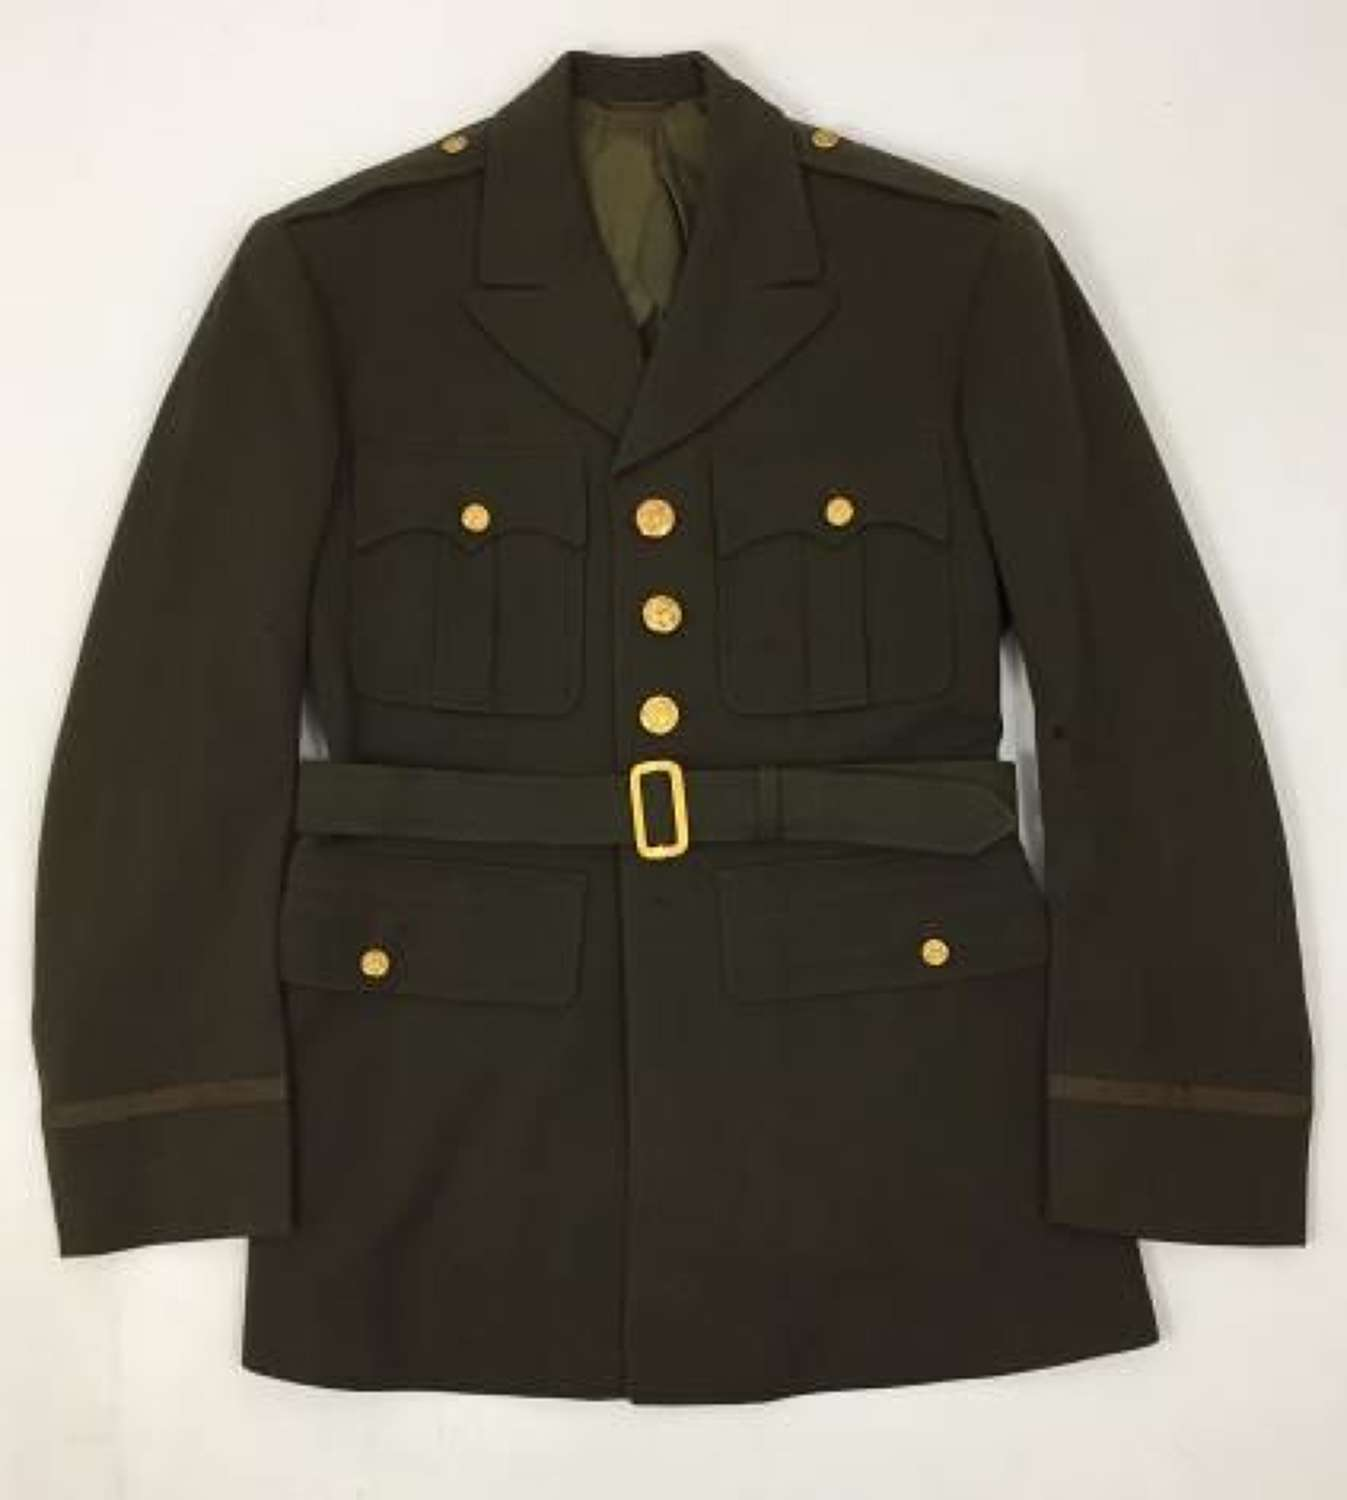 Original 1942 Dated US Army Officers Tunic - 37R